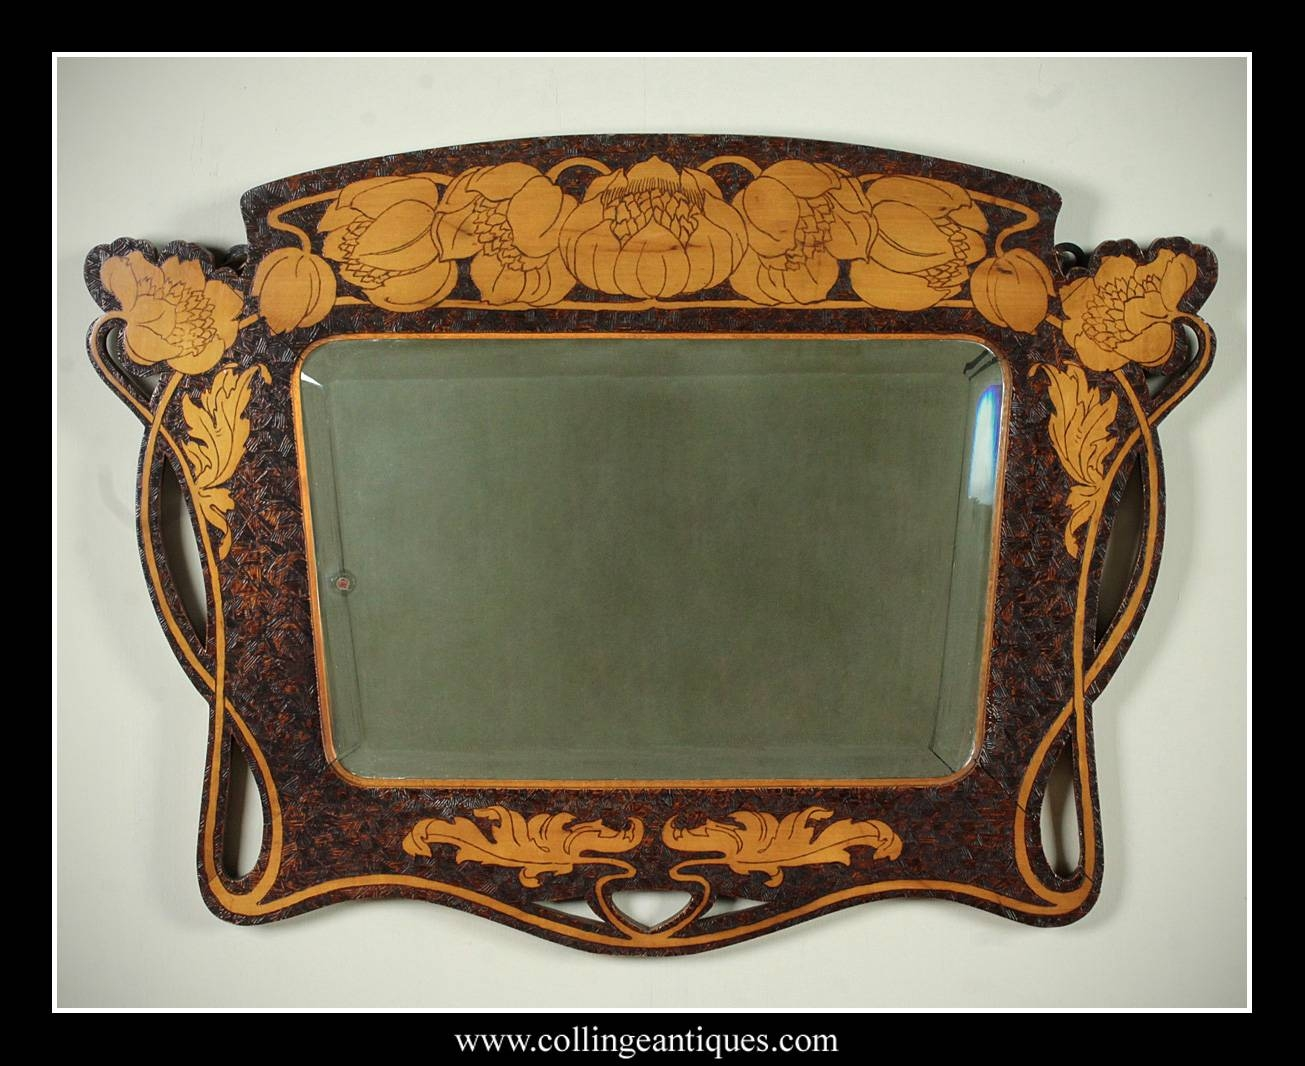 Art Nouveau Pokerwork Mirror. - Collinge Antiques throughout Art Nouveau Wall Mirrors (Image 13 of 25)